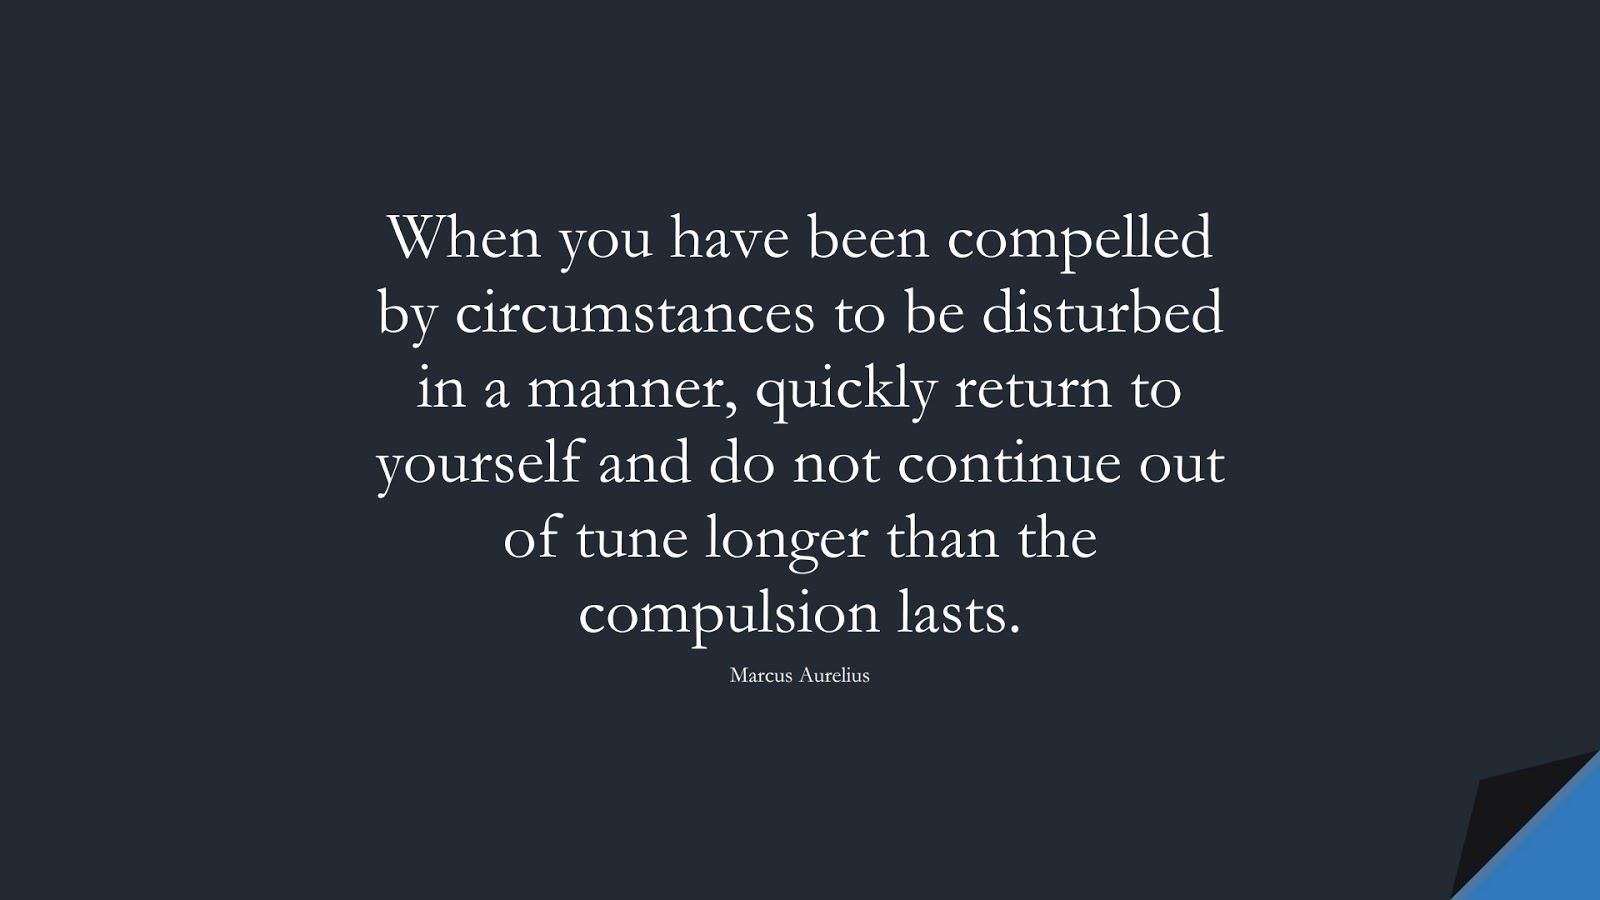 When you have been compelled by circumstances to be disturbed in a manner, quickly return to yourself and do not continue out of tune longer than the compulsion lasts. (Marcus Aurelius);  #MarcusAureliusQuotes